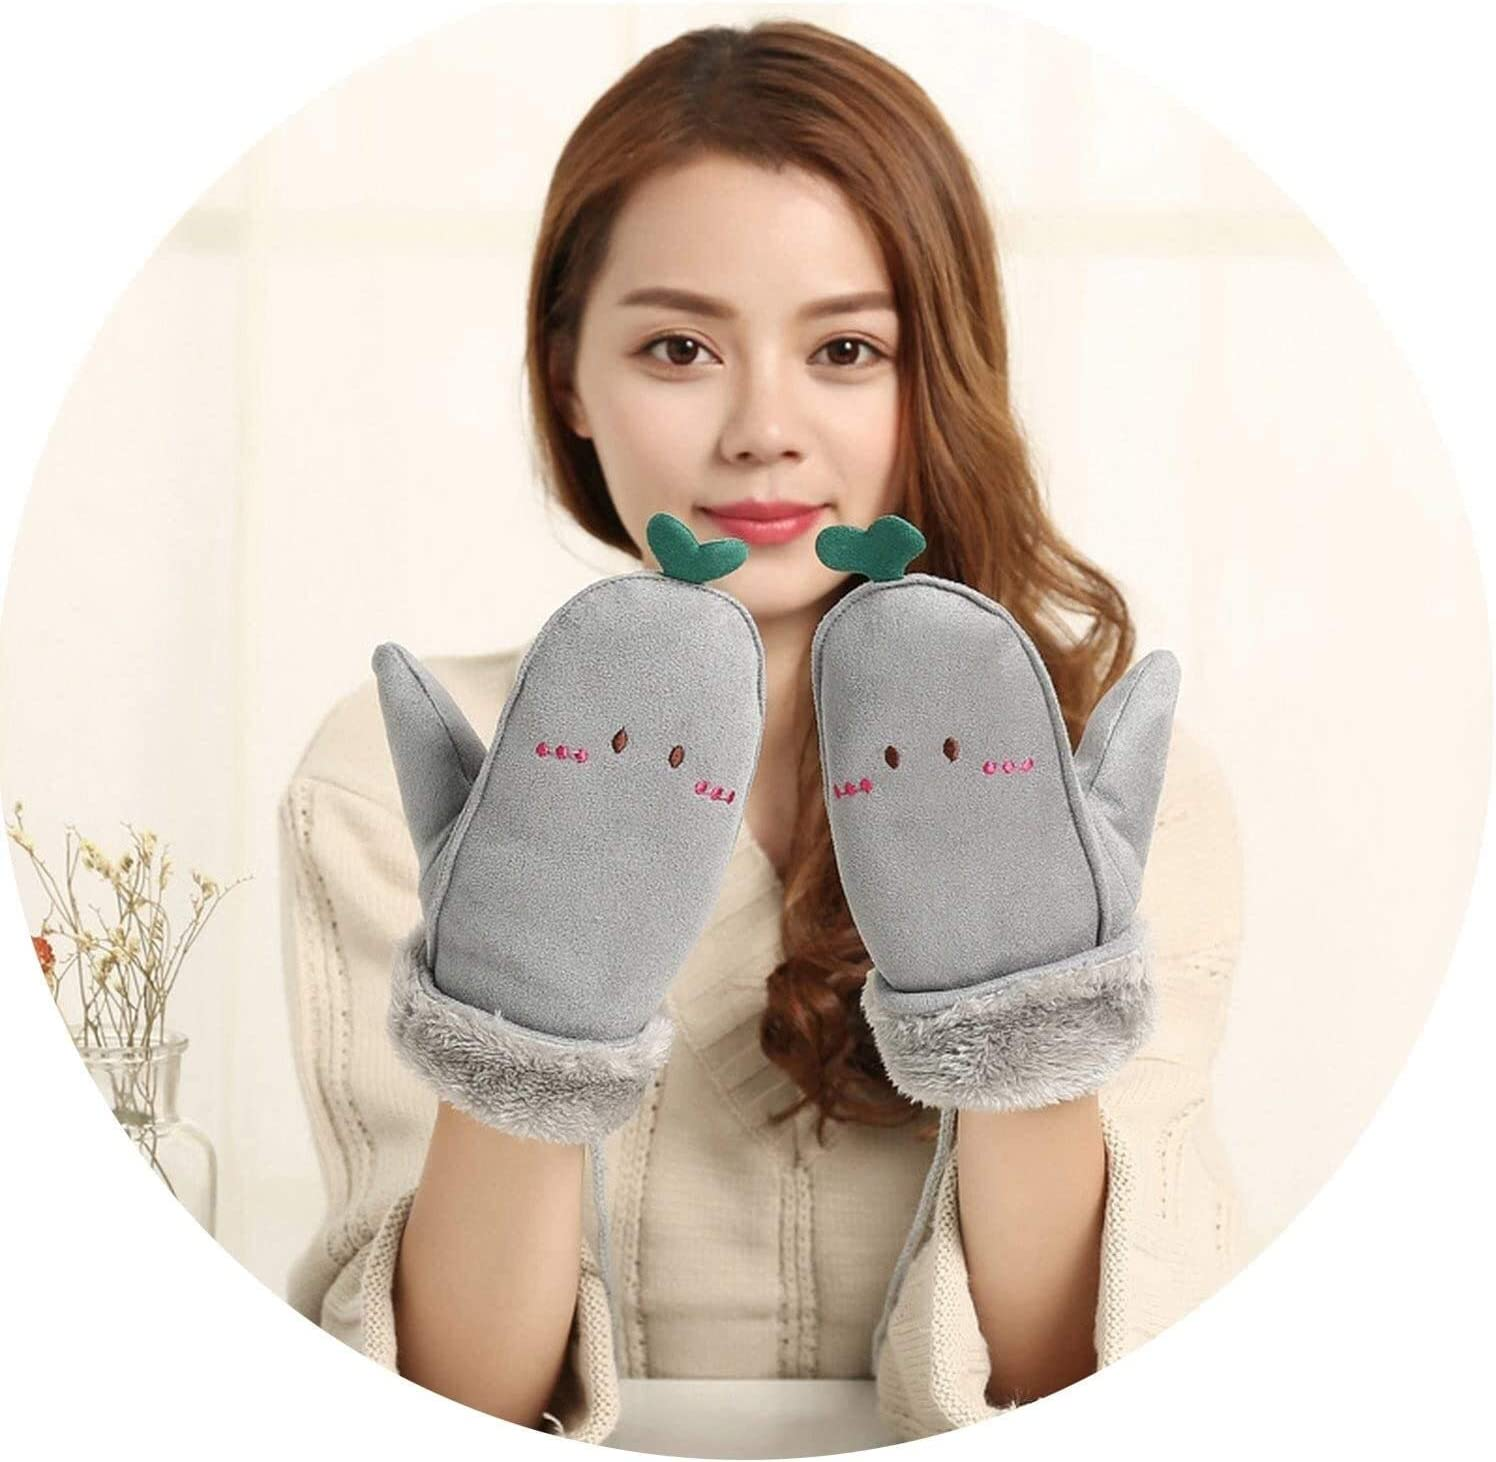 Samantha Warm Gloves Female Winter Plus Plush Thicker Warm Halter Soft Mittens Women Cute Cartoon Face Leaves Suede Leather Gloves (Color : Grey, Size : One Size)